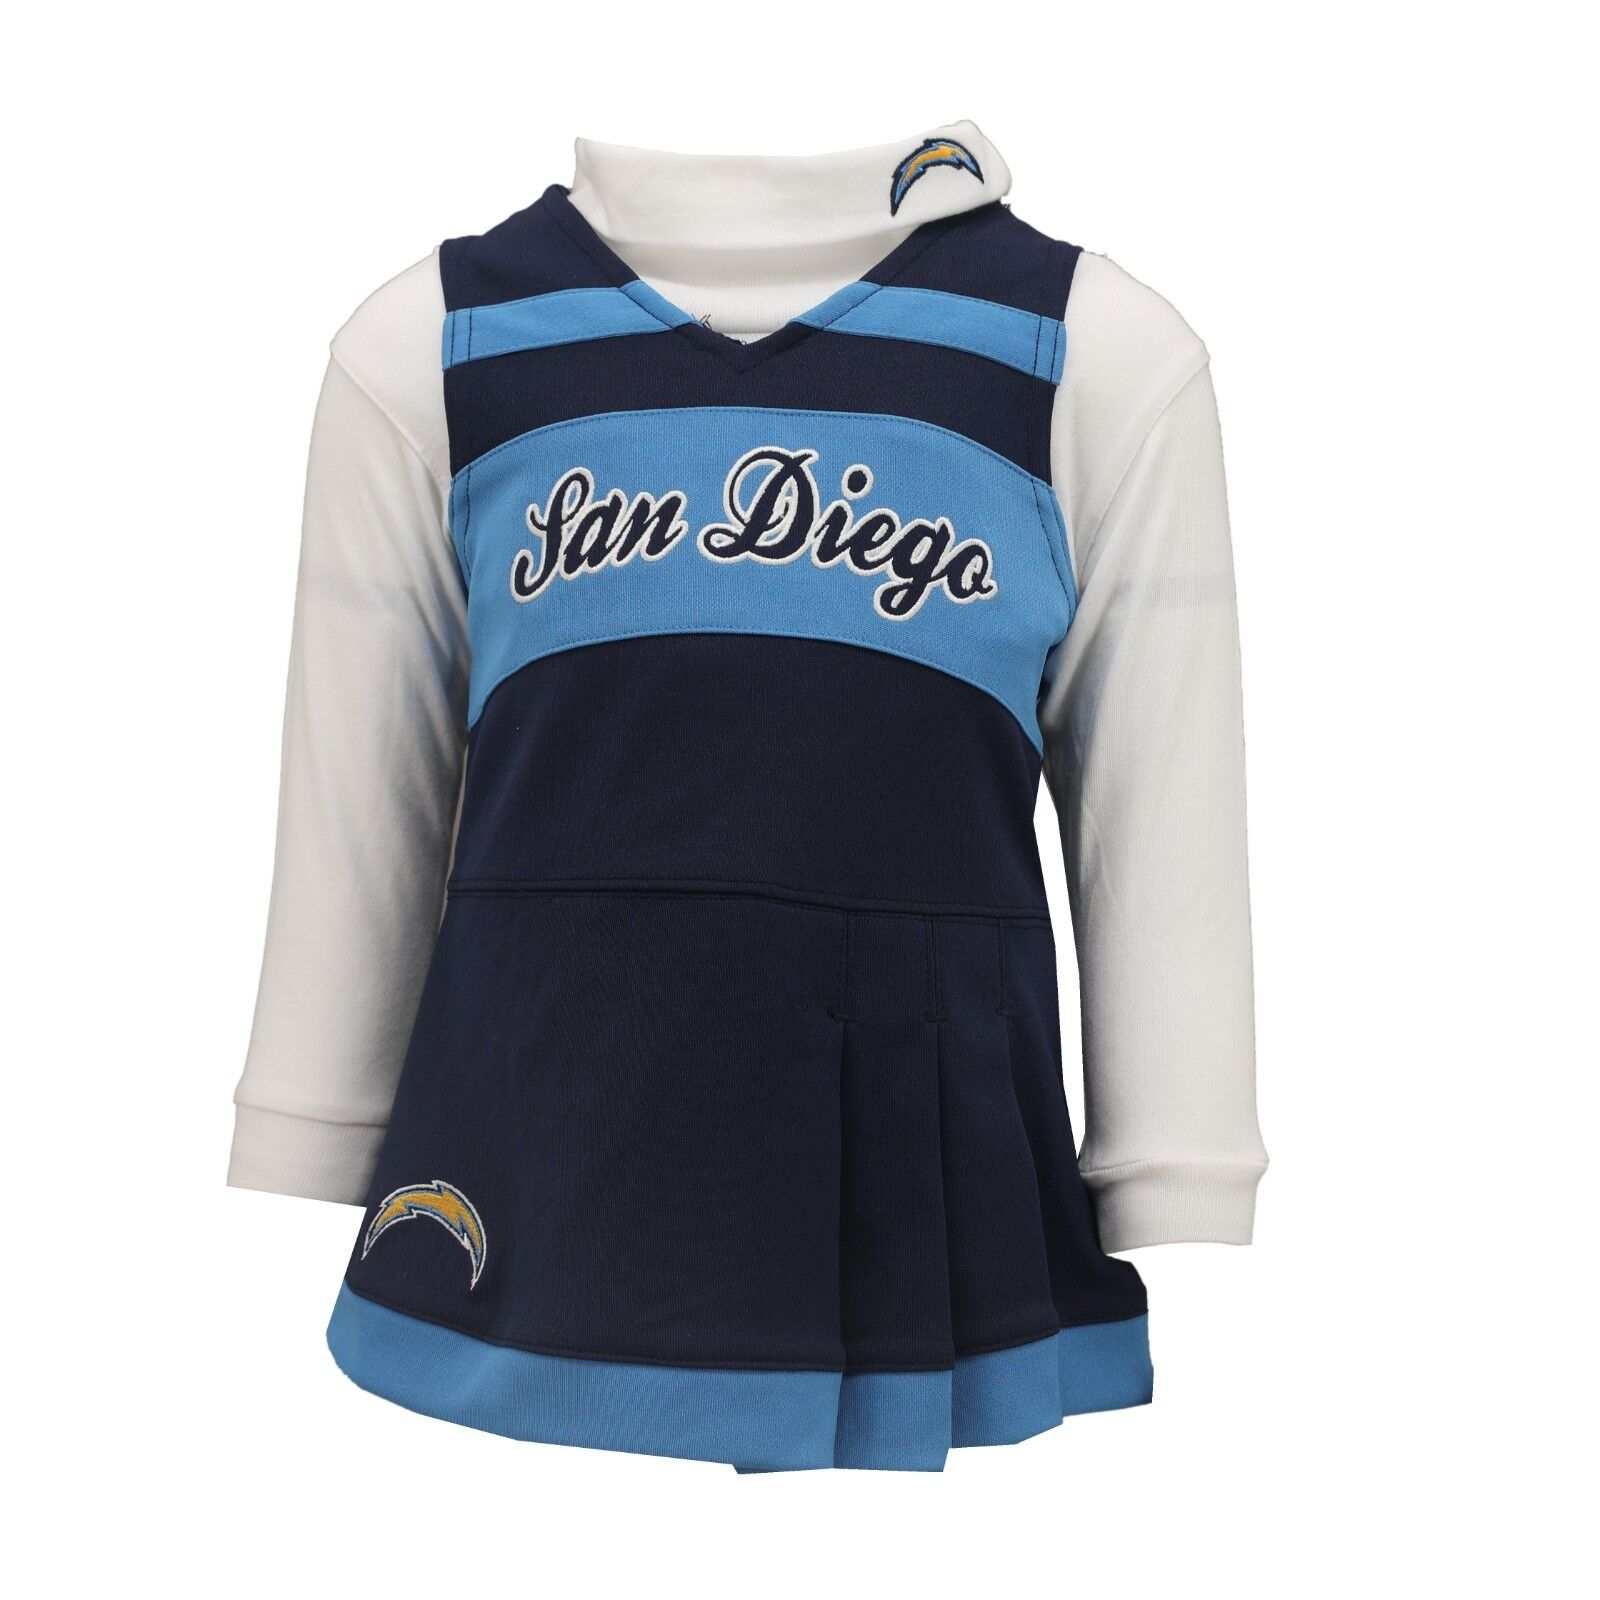 0a0fb622 Details about San Diego Chargers NFL Baby Infant Girls Size 2-Piece  Cheerleader Outfit New